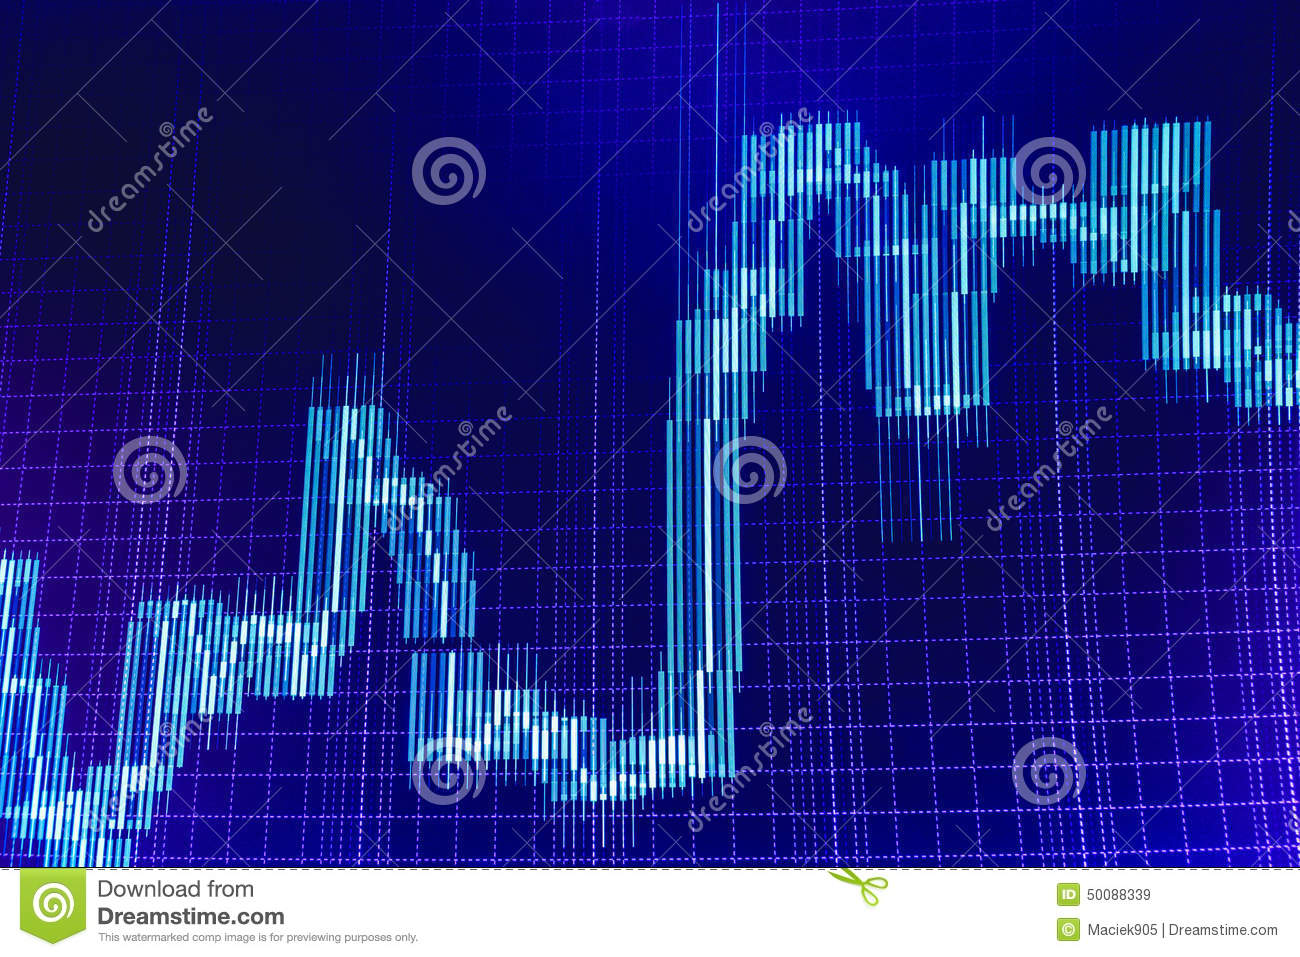 Forex stock exchange